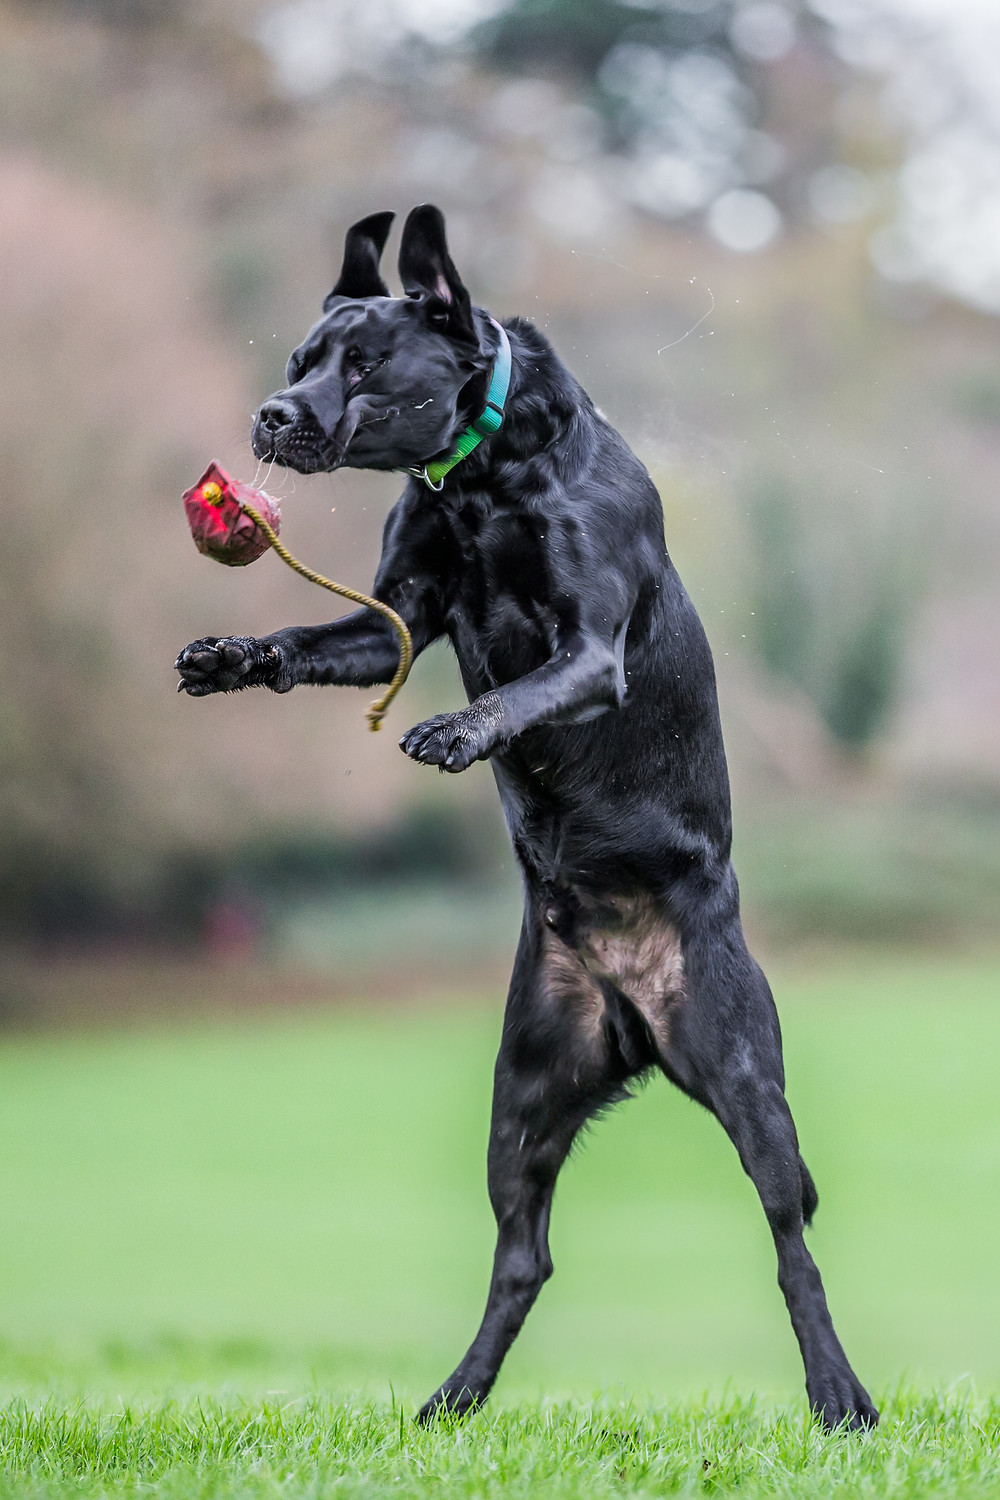 Dog photography in London. Logi the labrador almost catching a toy.